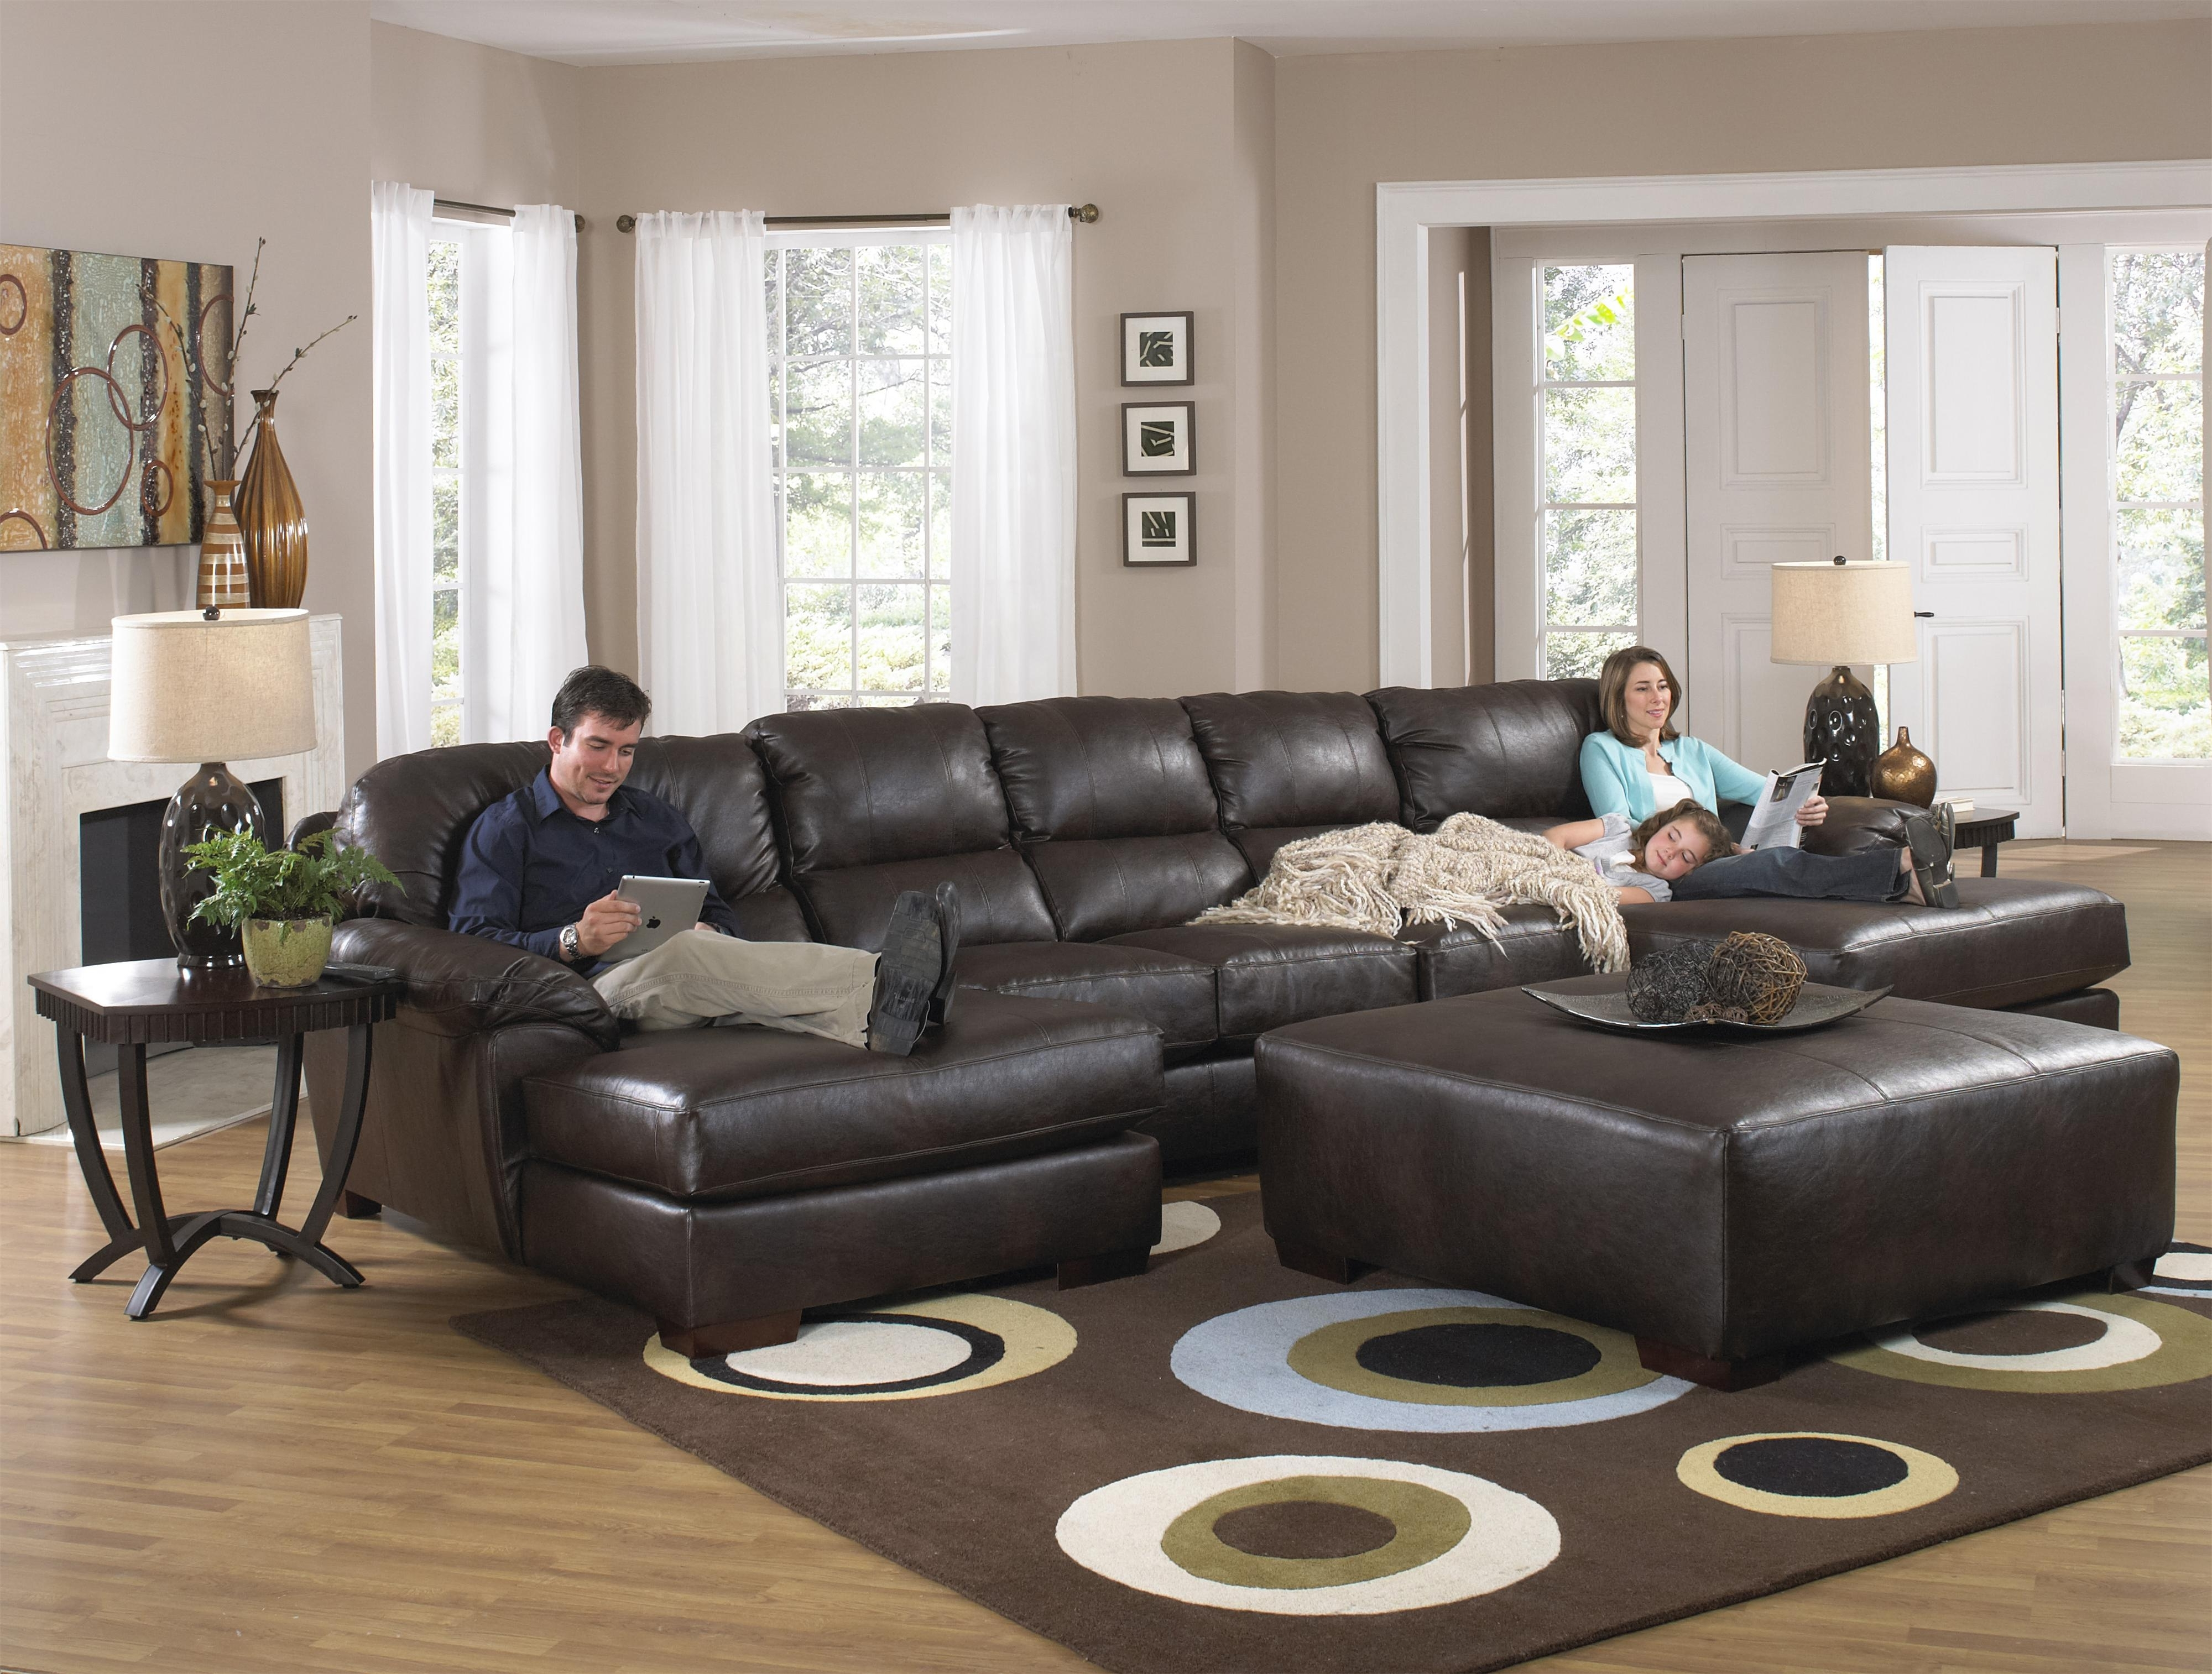 Sectional Sofas With Chaise And Ottoman Intended For Most Up To Date Sofa : Beautiful Large Sectional Sofa With Chaise L Shaped Cream (View 12 of 20)